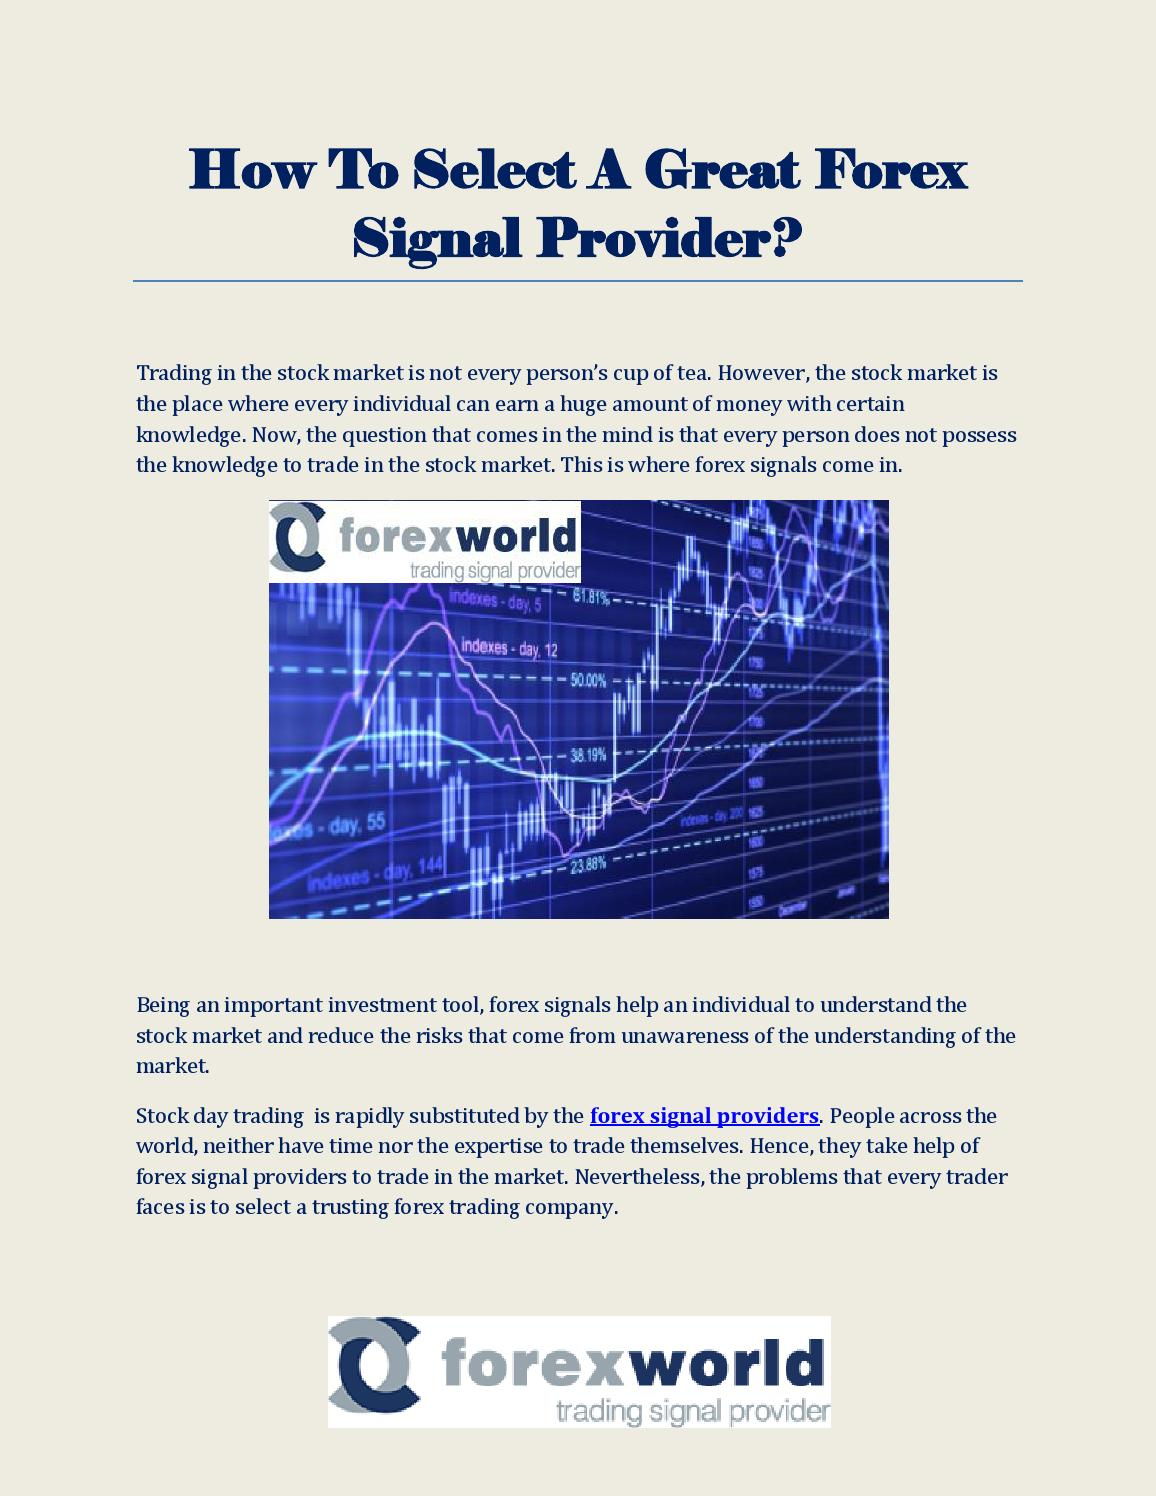 Forex signal providers